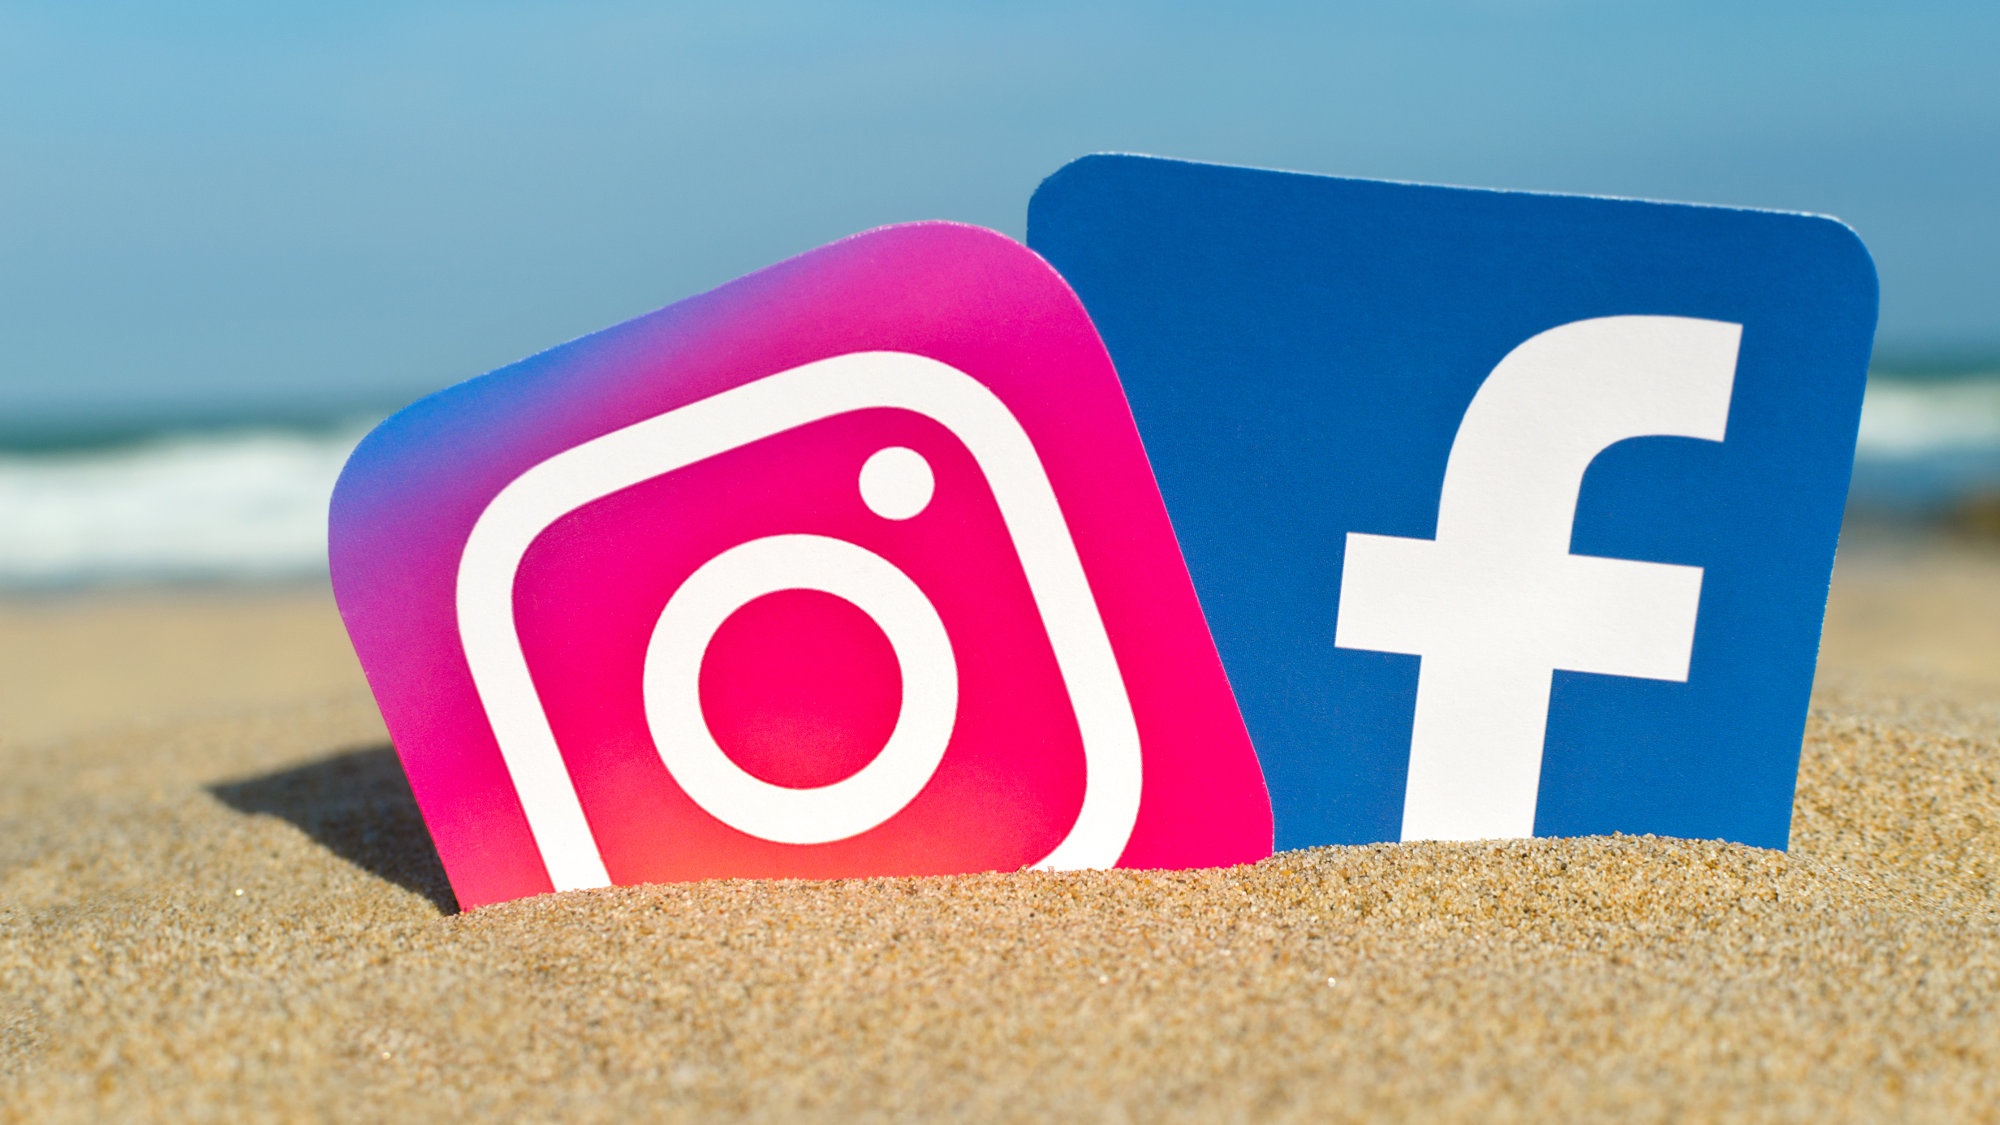 Instagram and Facebook logos dug into the sand